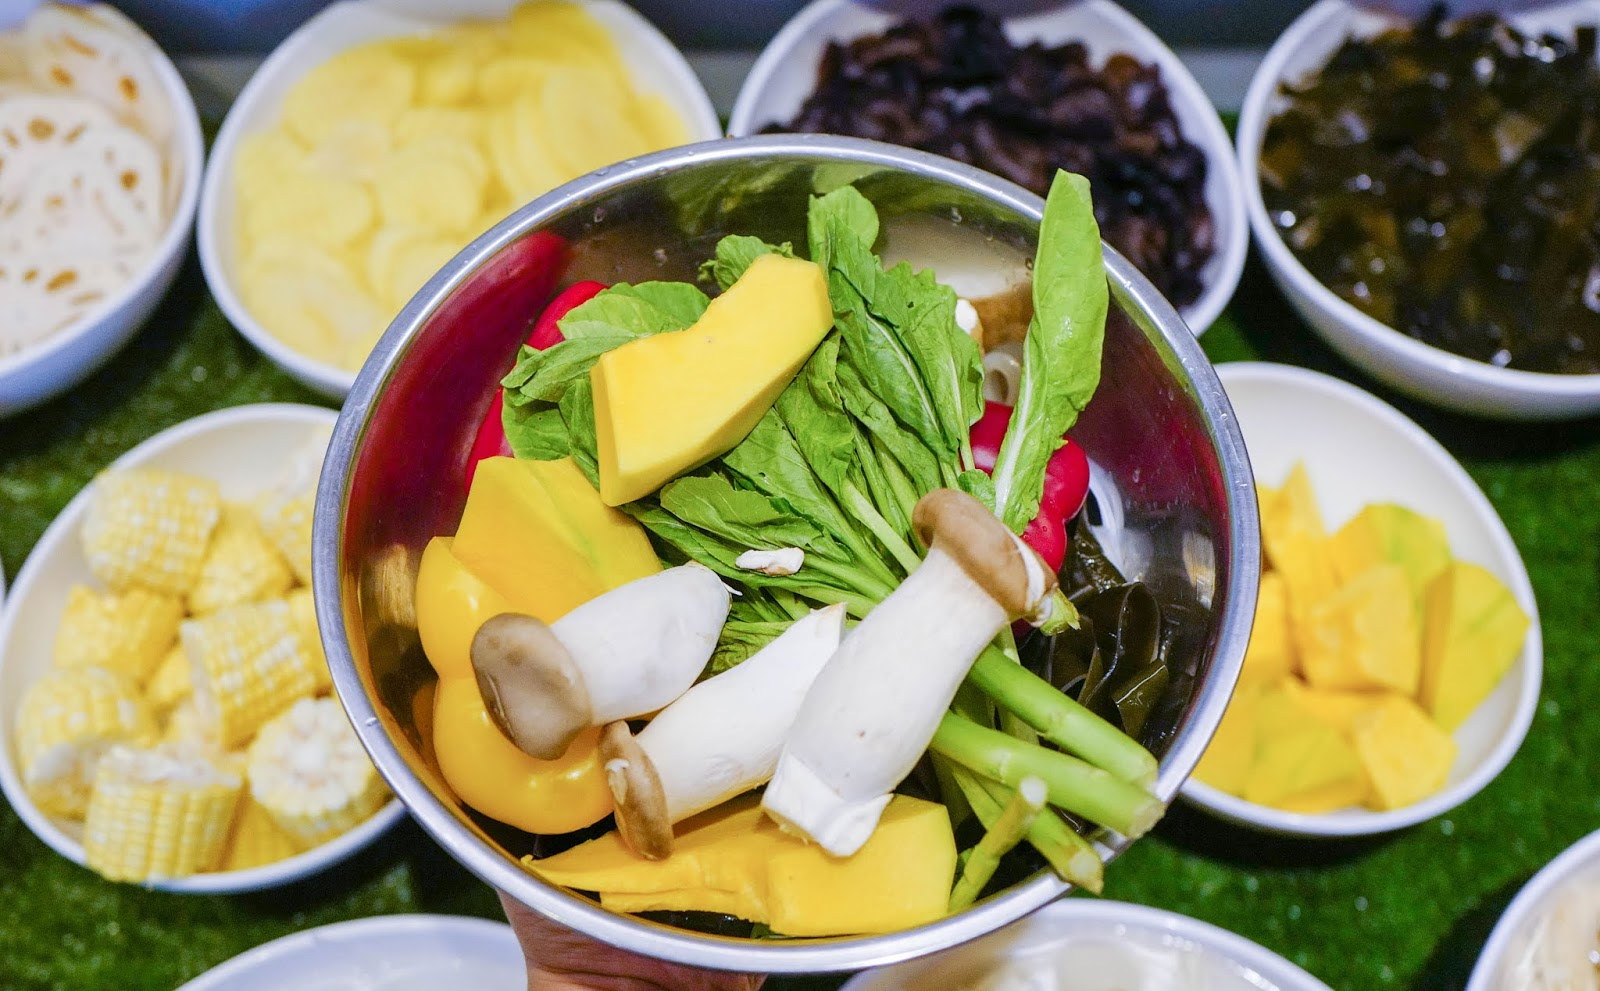 China Search Date 2018 09 30 Isolated Unipolar Stepper Motor Driver Circuit Izole Drivers Blazing Into Sunway Pyramid Malaysias Homegrown Hotpot Kitchen Fires Up The Appetites Of Spice Addicted Customers With Sichuan Inspired Fare That Casts